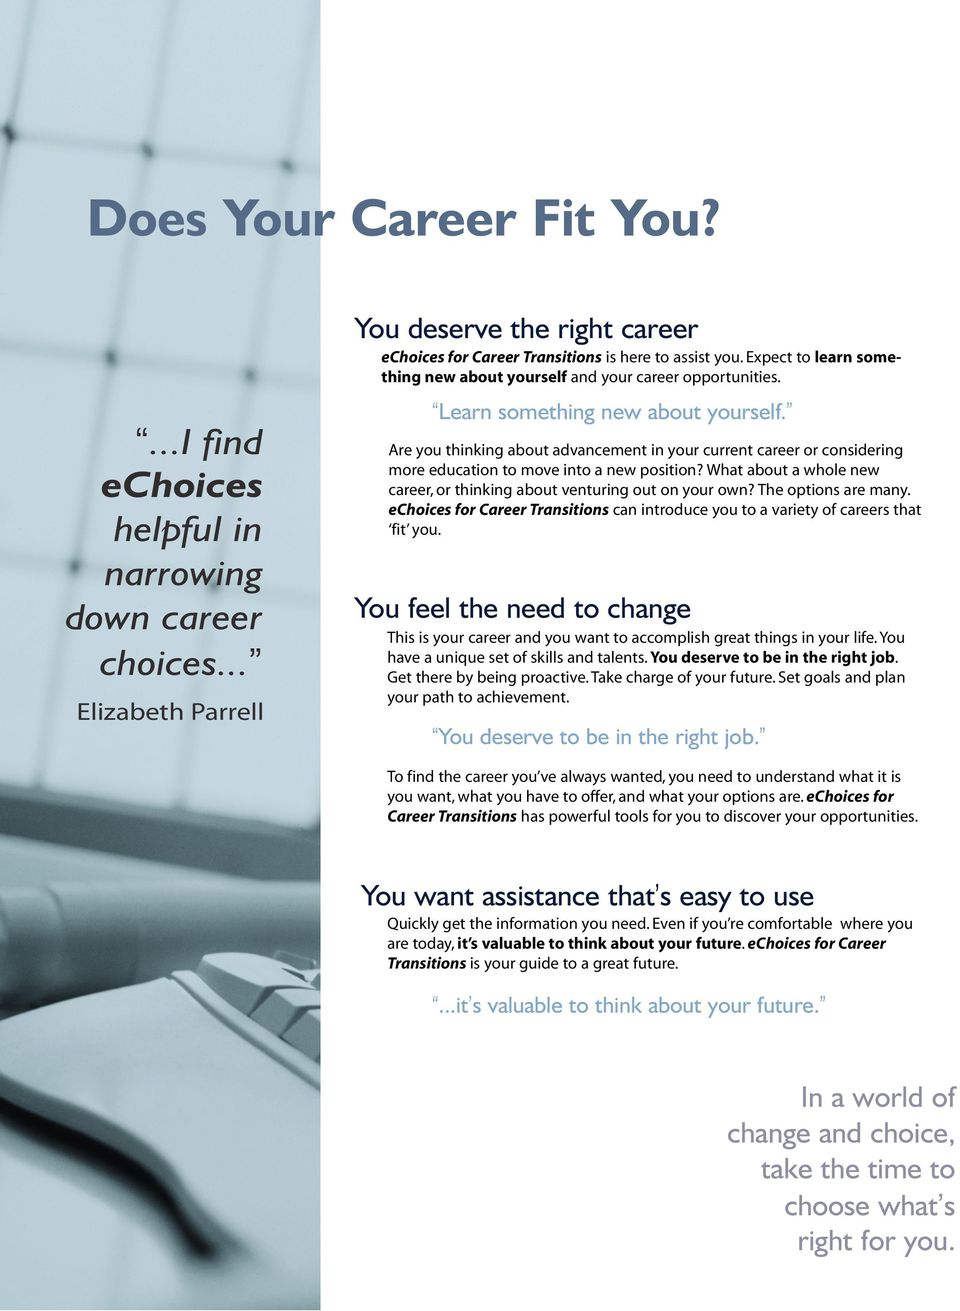 Are you thinking about advancement in your current career or considering more education to move into a new position? What about a whole new career, or thinking about venturing out on your own?